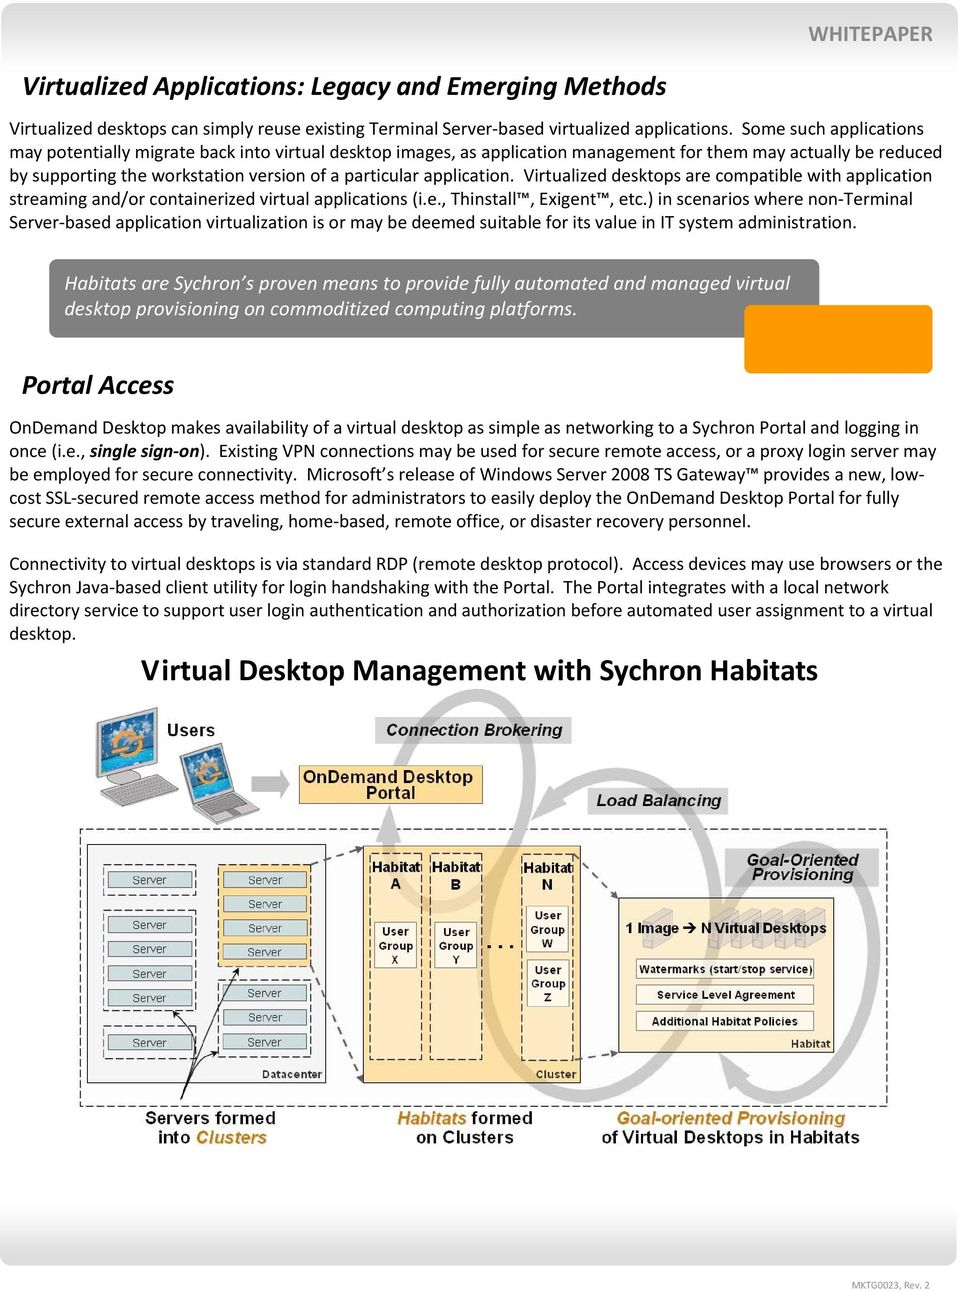 application. Virtualized desktops are compatible with application streaming and/or containerized virtual applications (i.e., Thinstall, Exigent, etc.